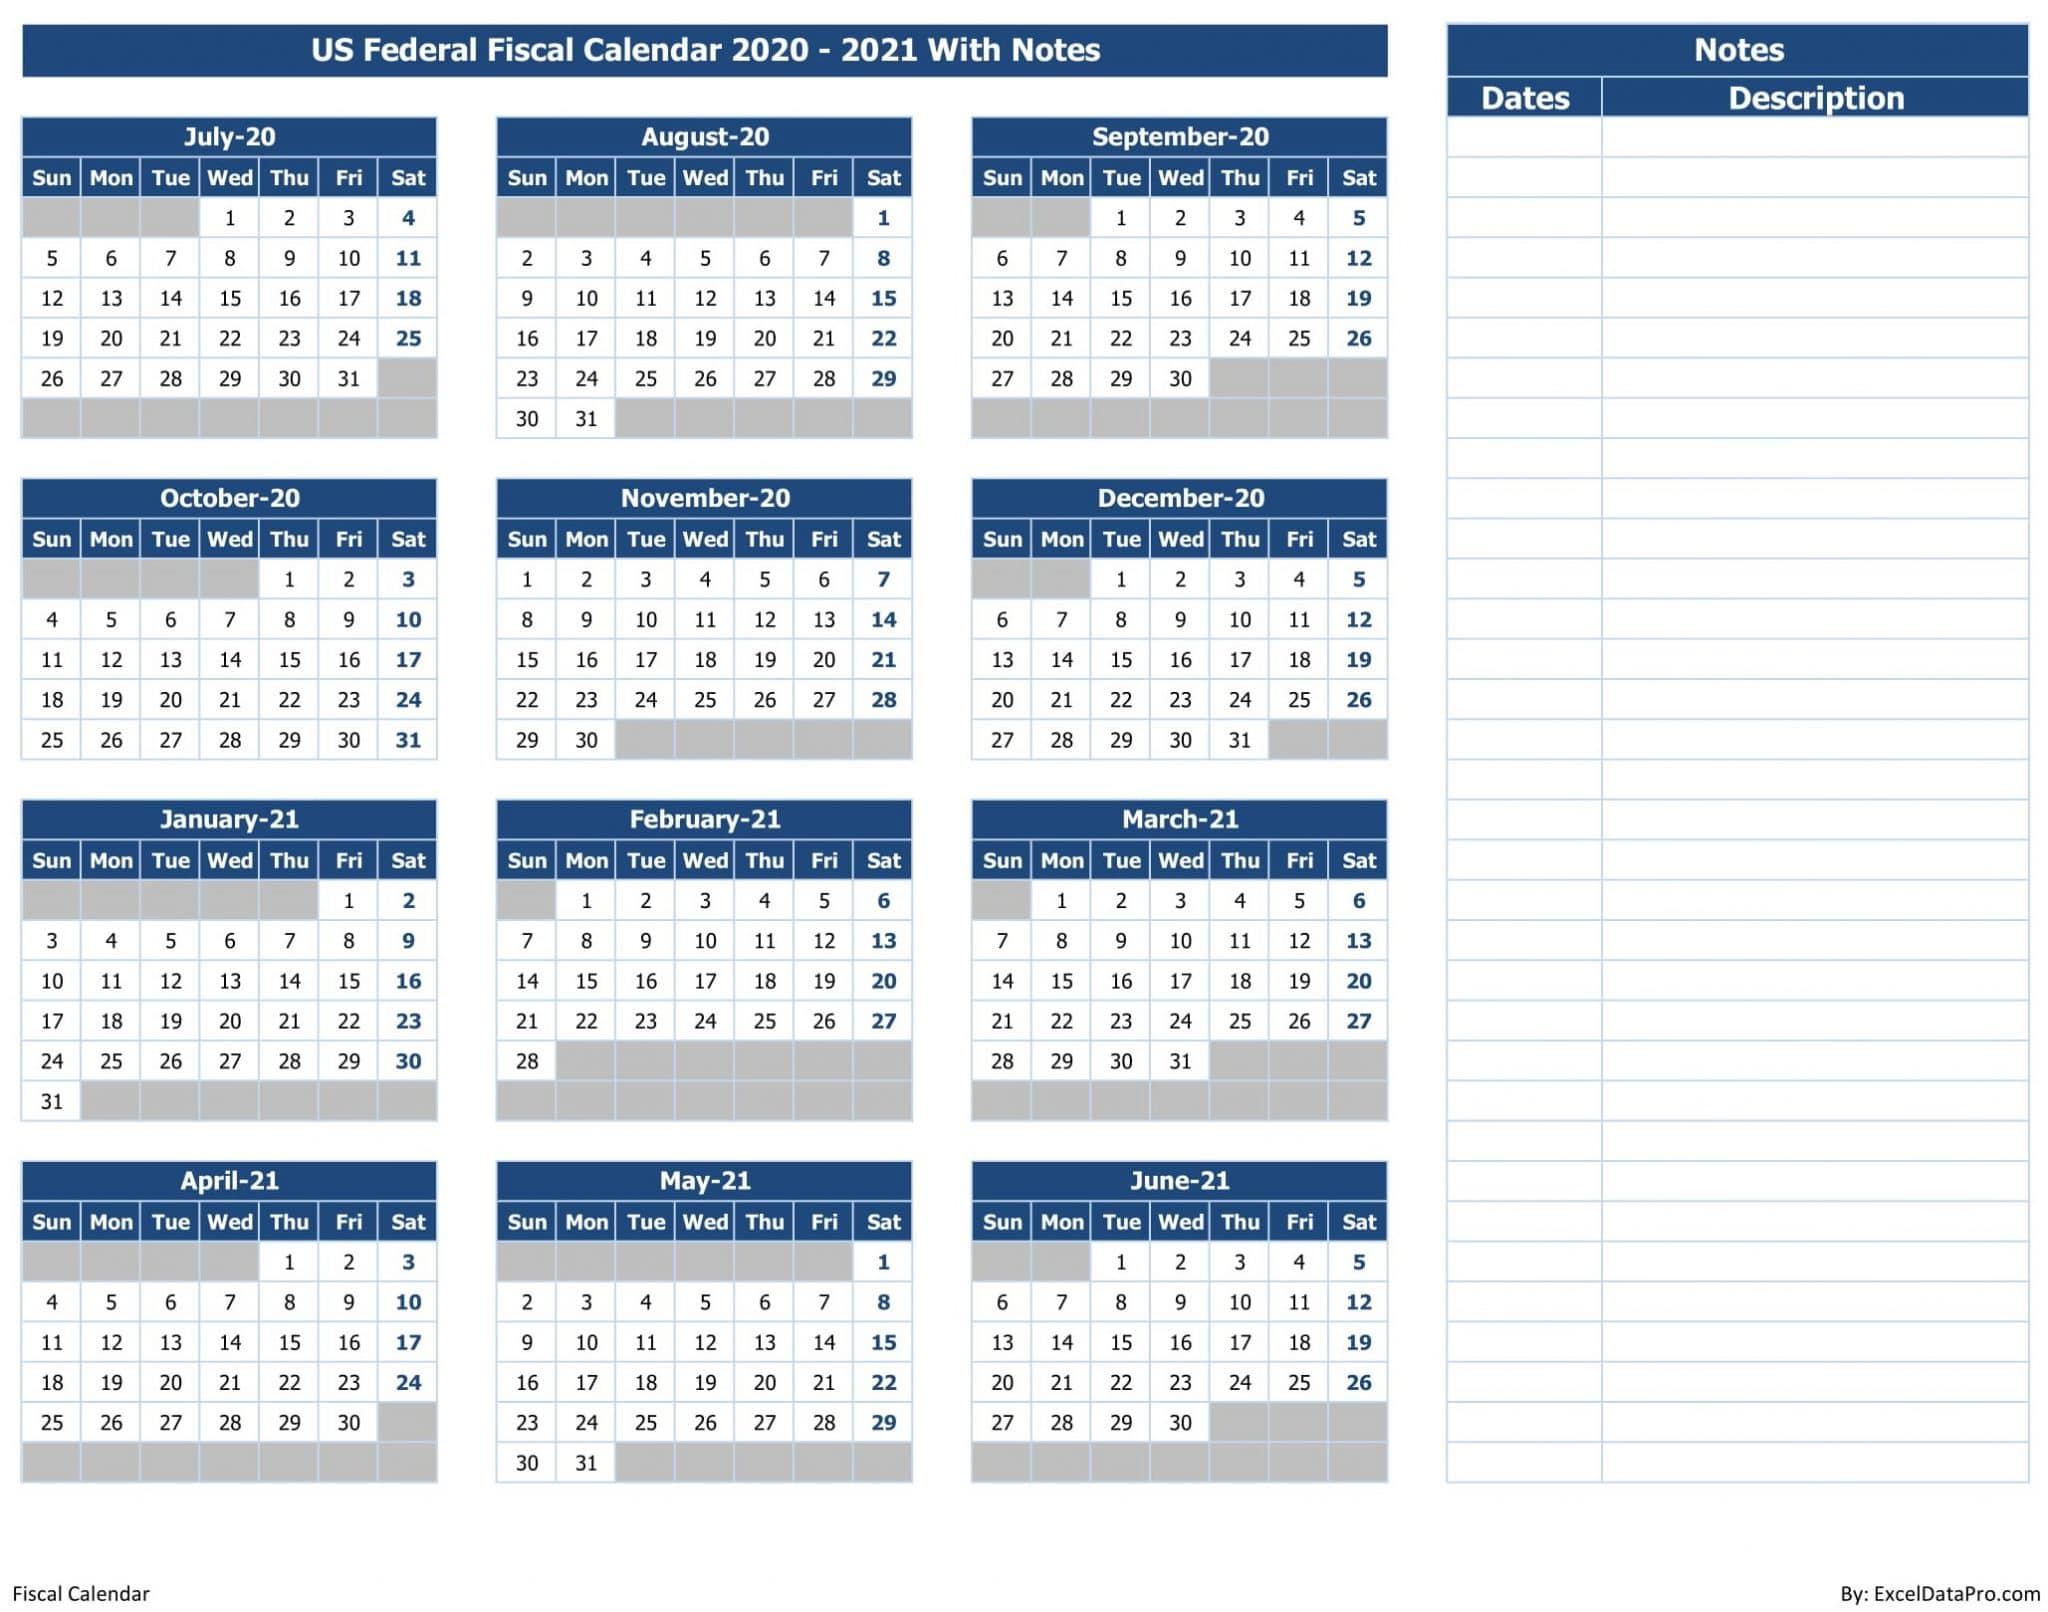 US Federal Fiscal Calendar 2020-21 With Notes - Colored